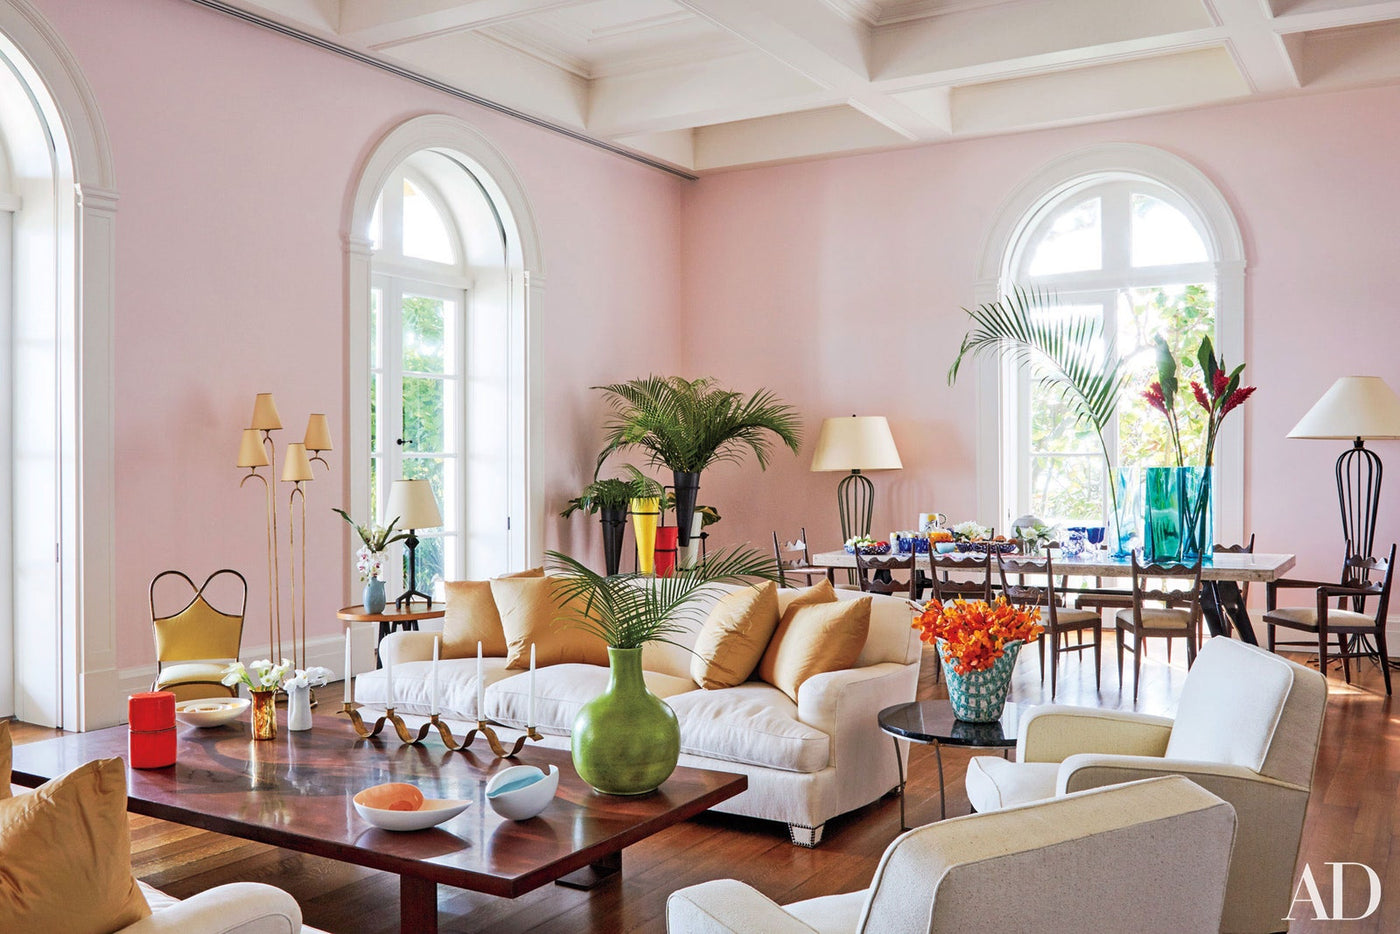 Home Tour in Palm Beach with Aerin Lauder